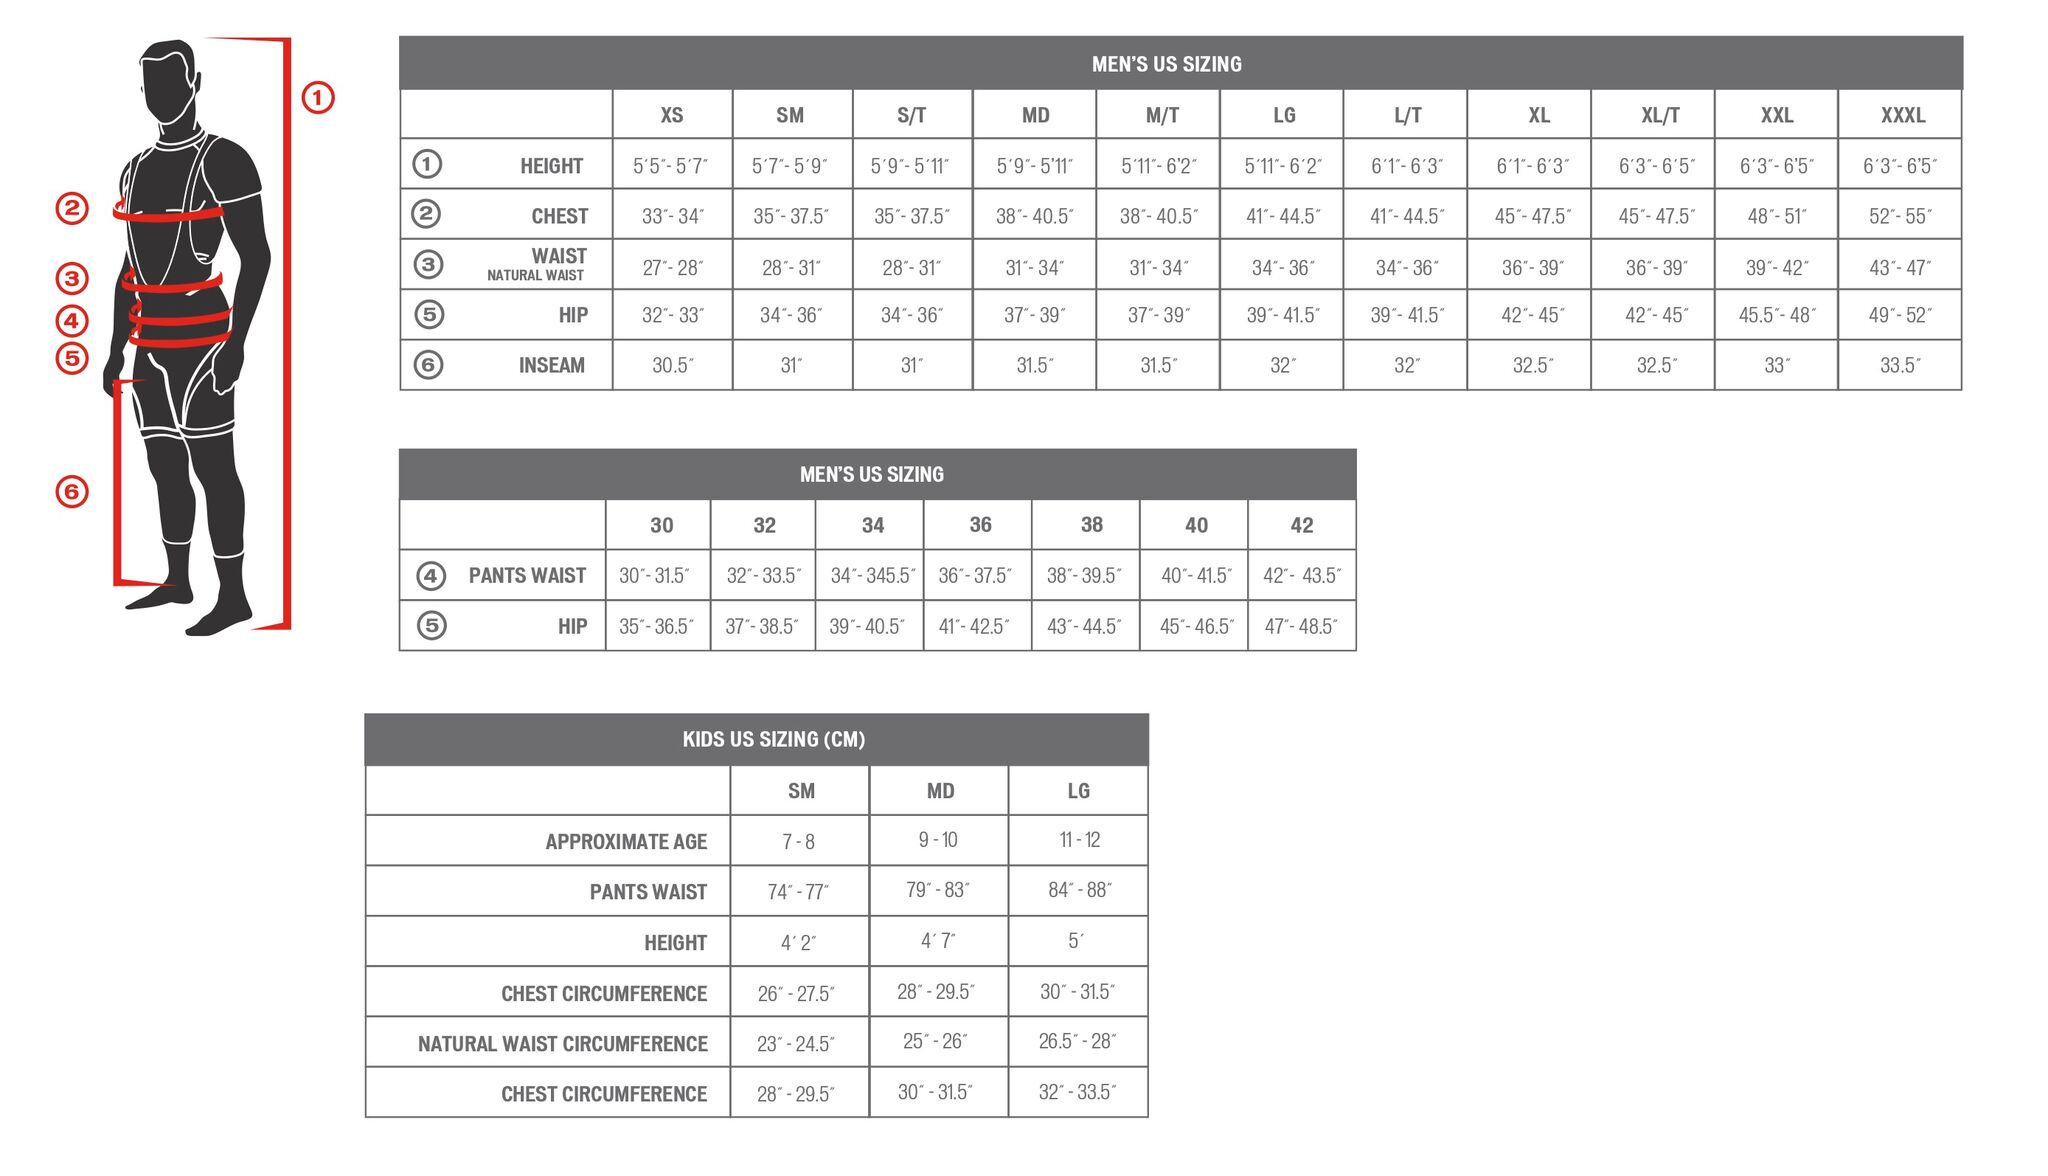 Specialized apparel sizing chart